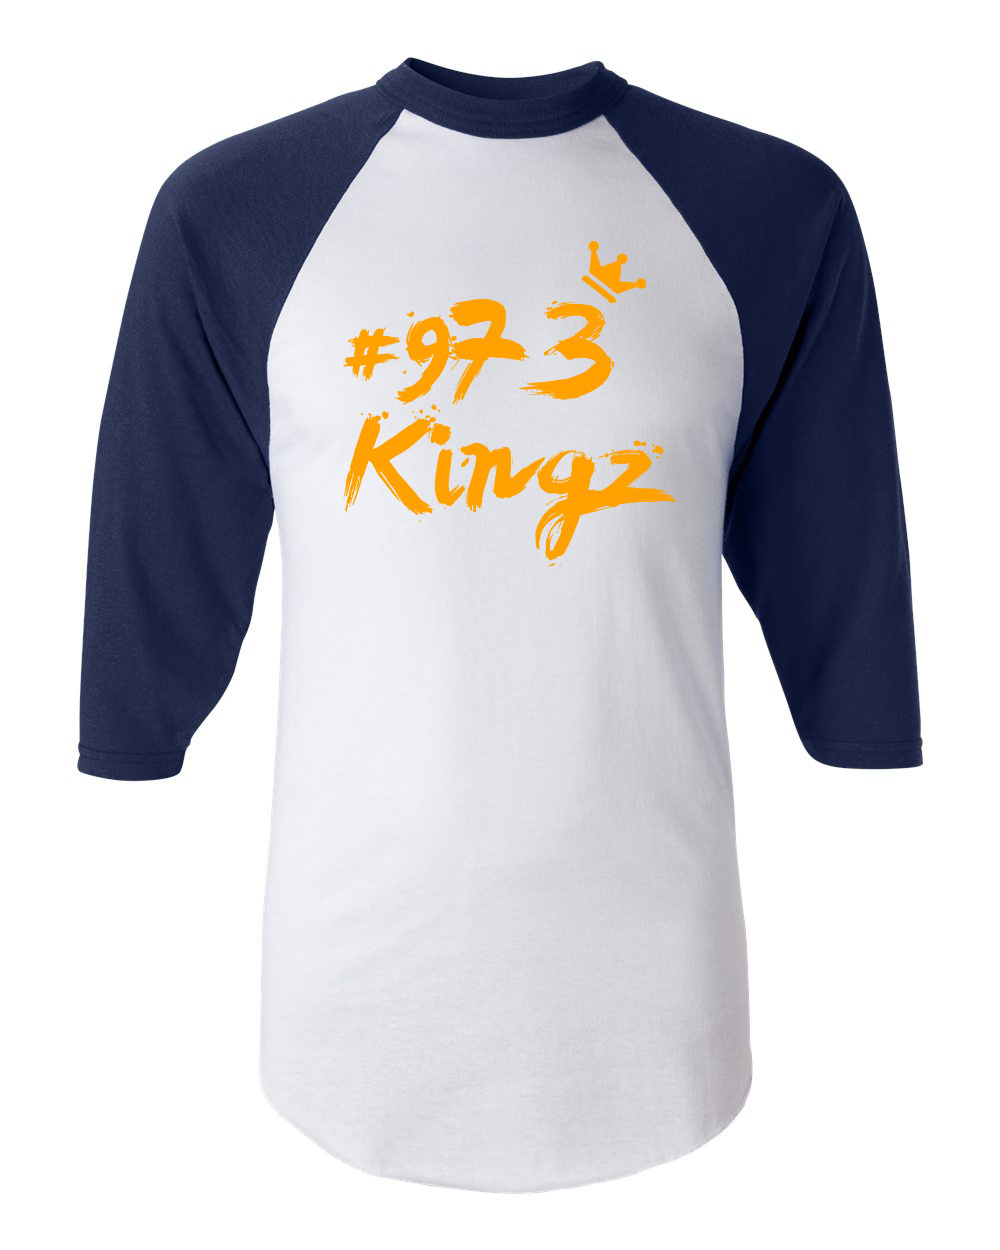 973 Kingz - Baseball Tee (blue and orange)